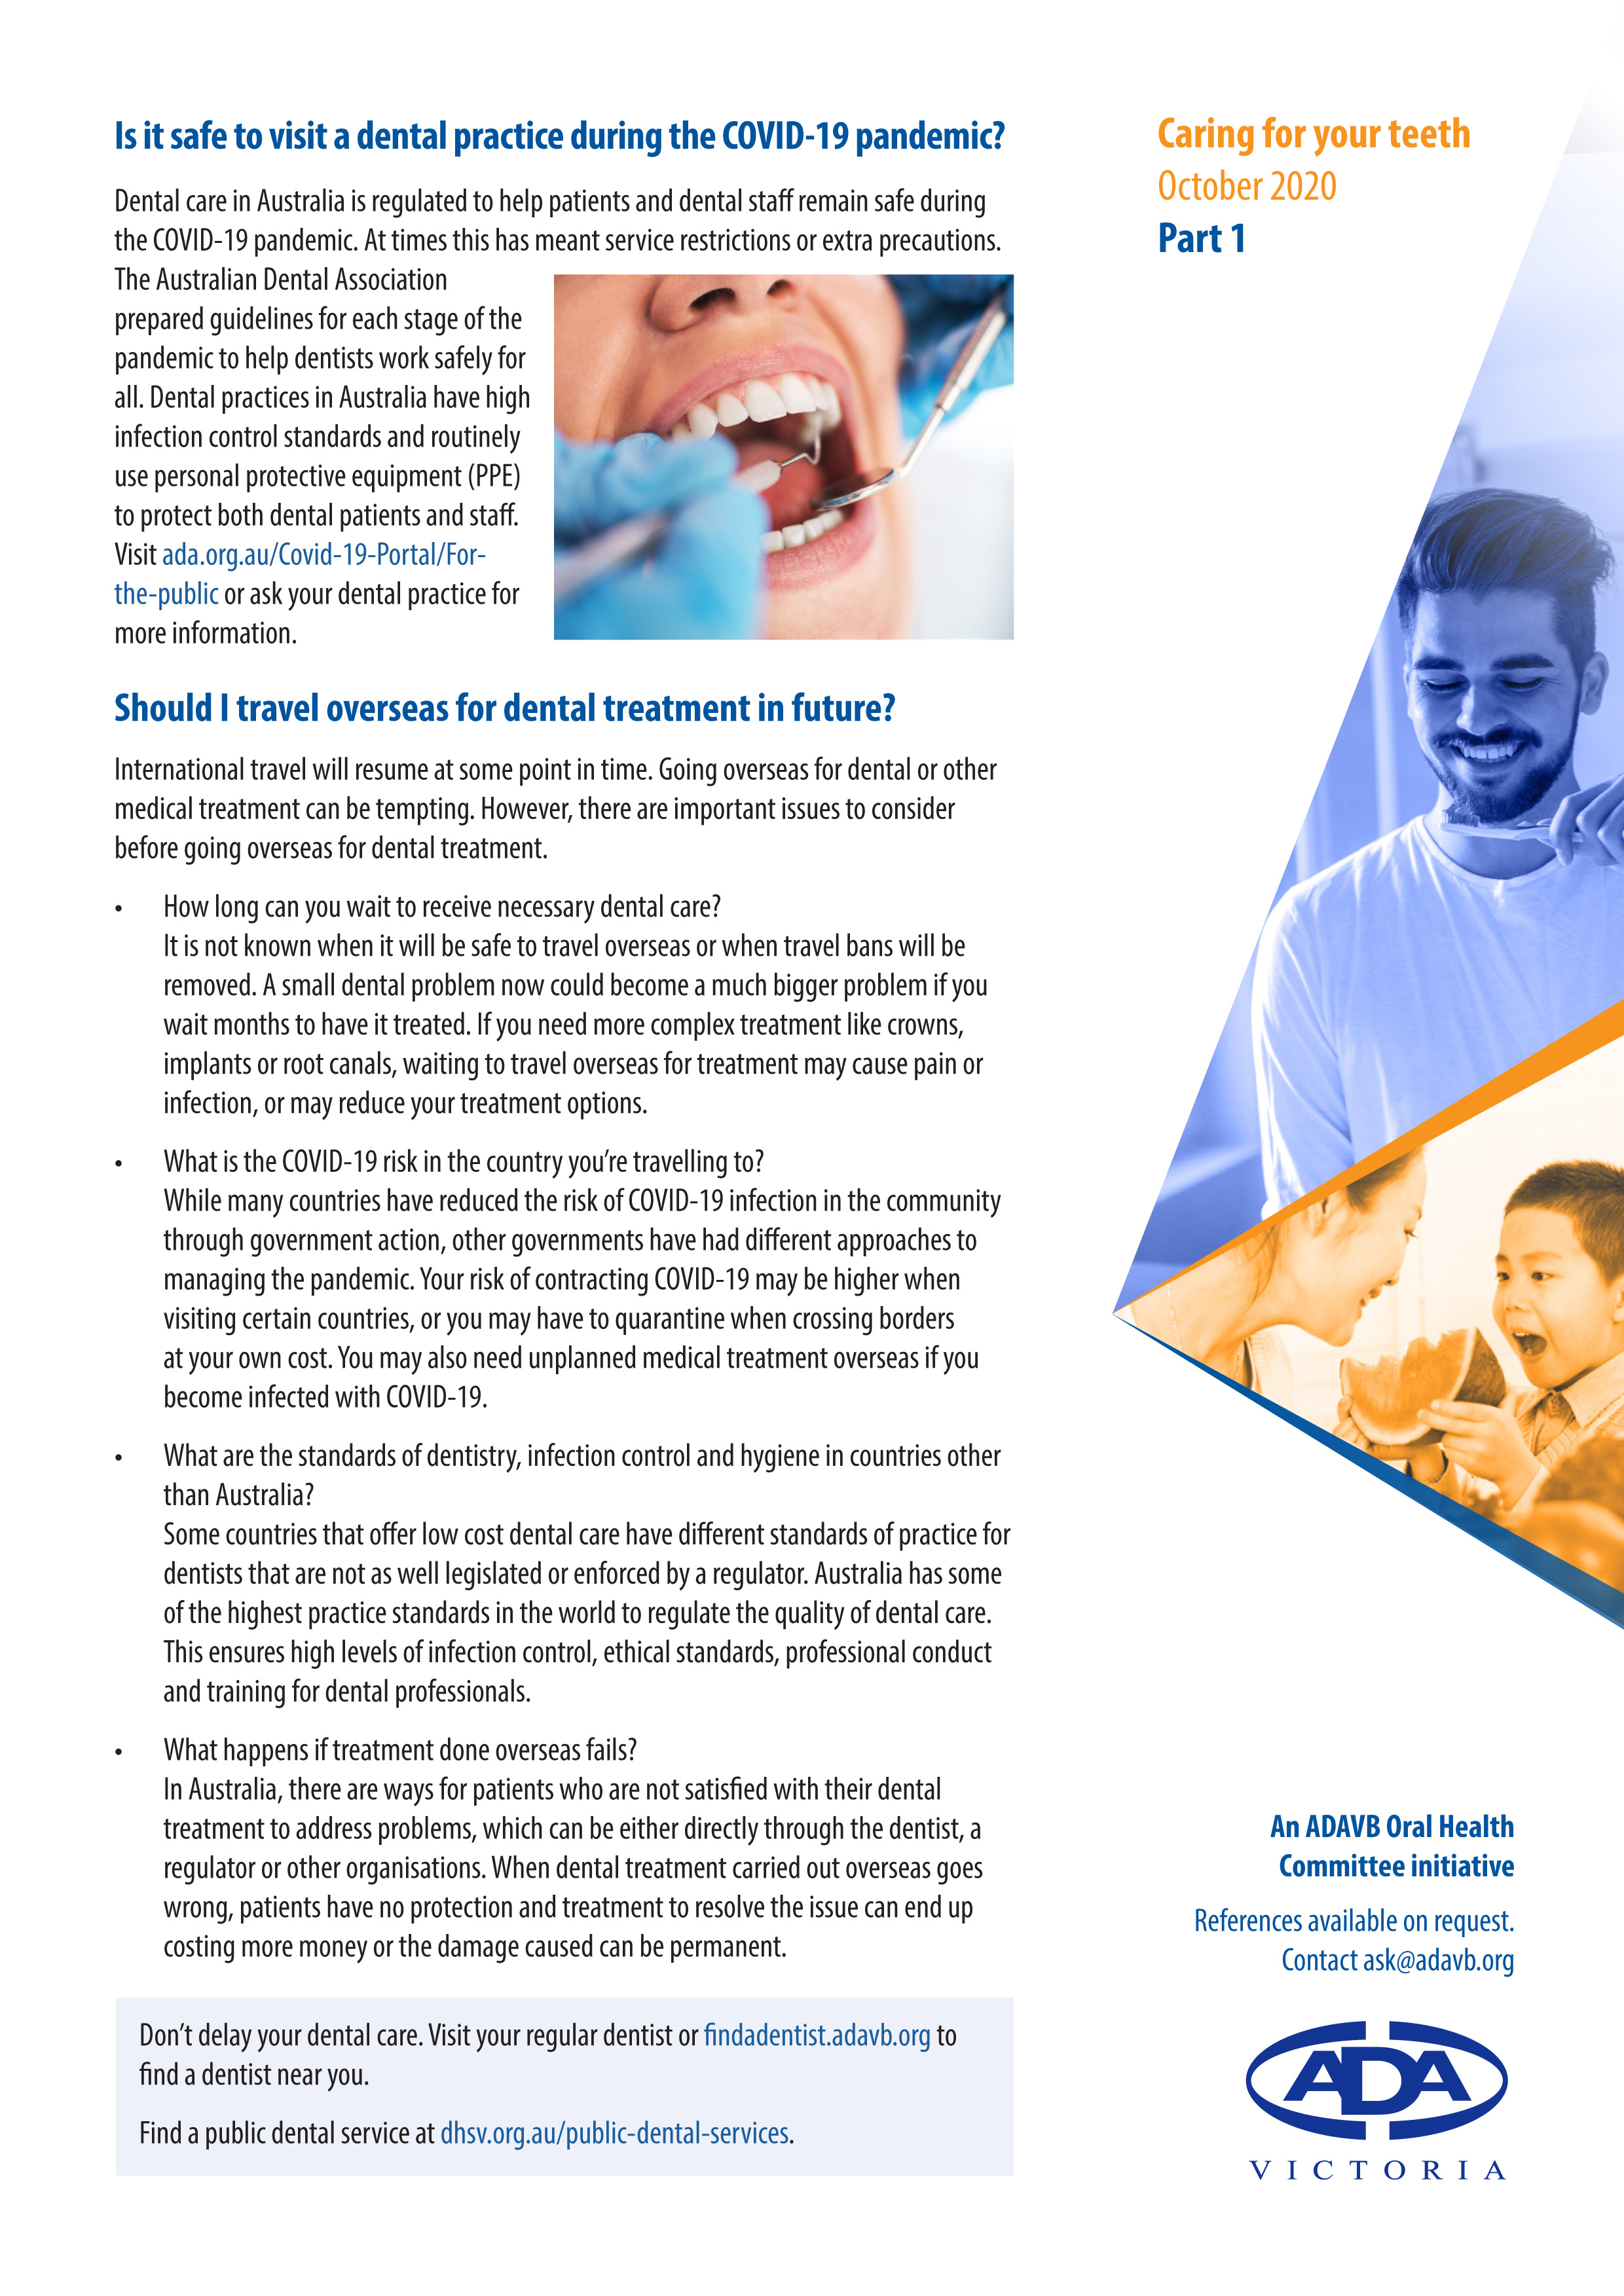 Caring-for-your-teeth-fact-sheet-Oct20---Part-1_final-2